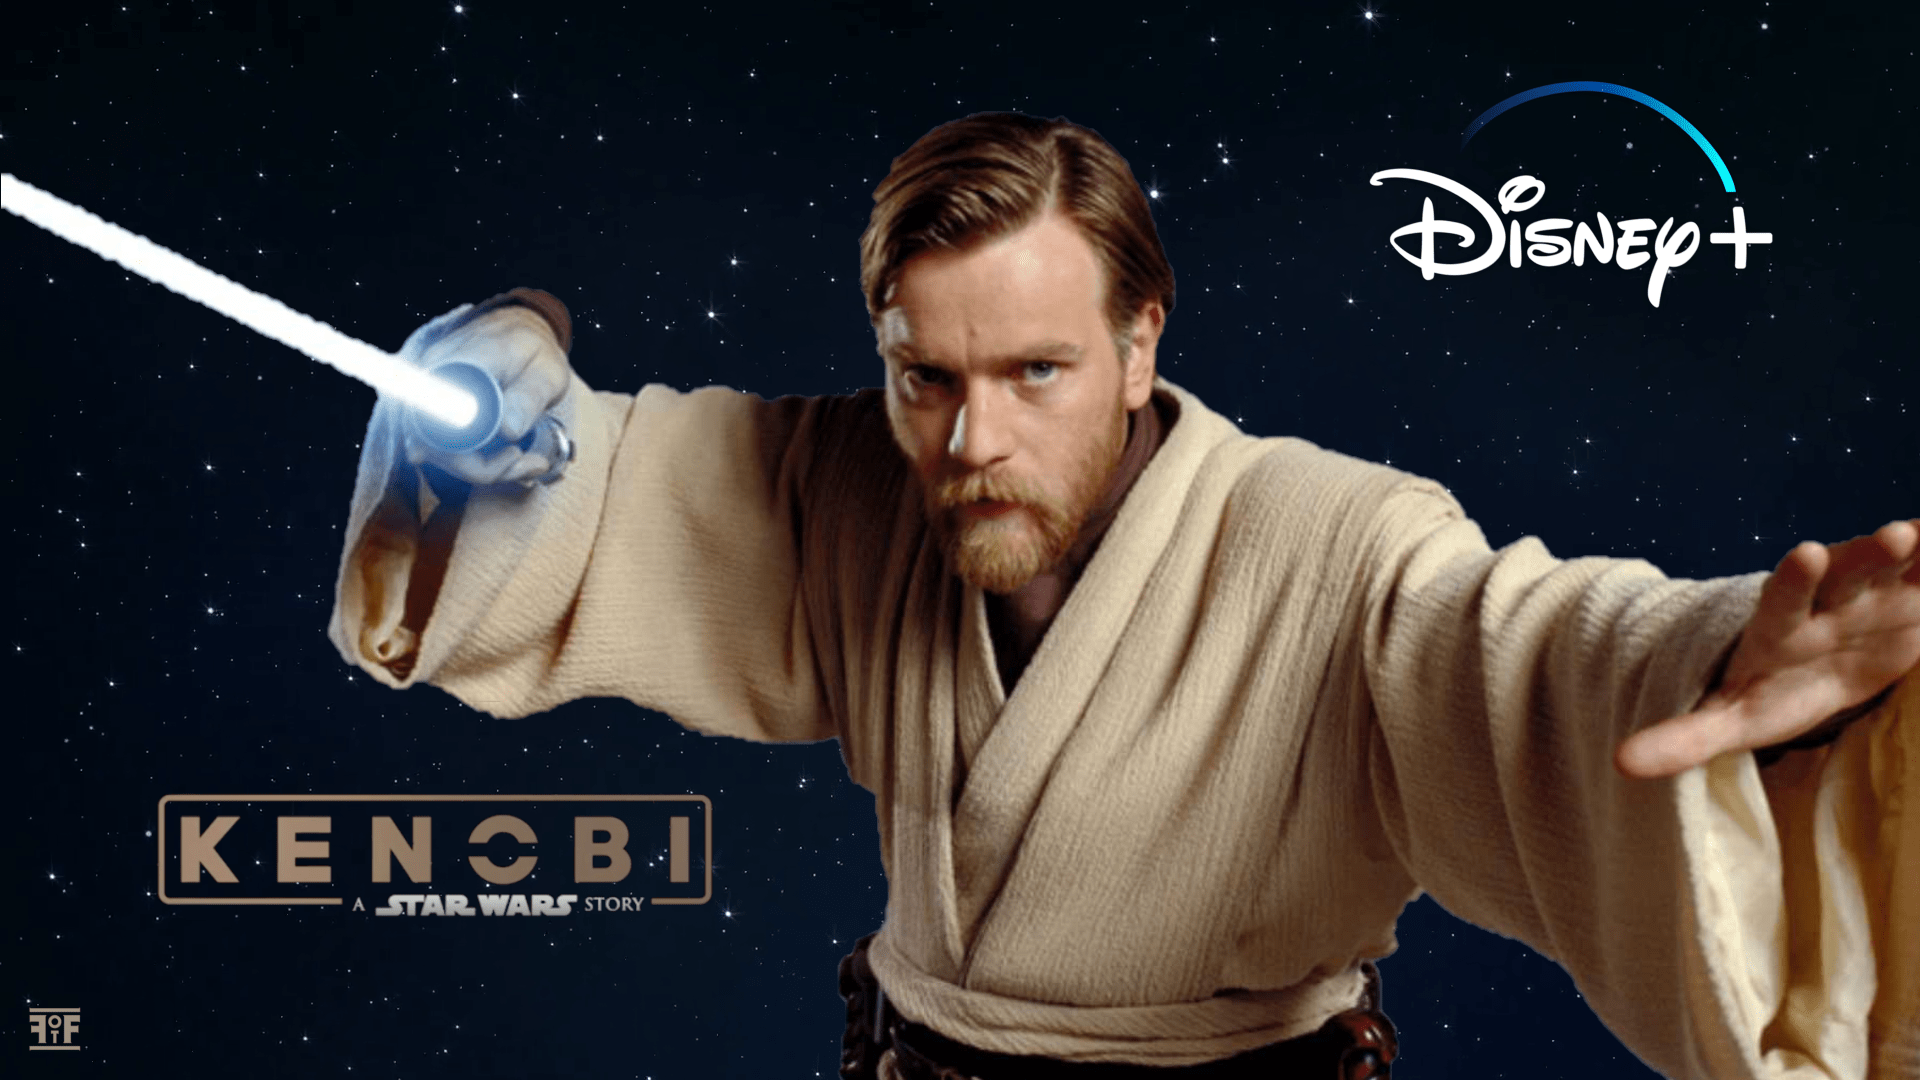 What Will The Kenobi Series Look Like? - Future of the Force